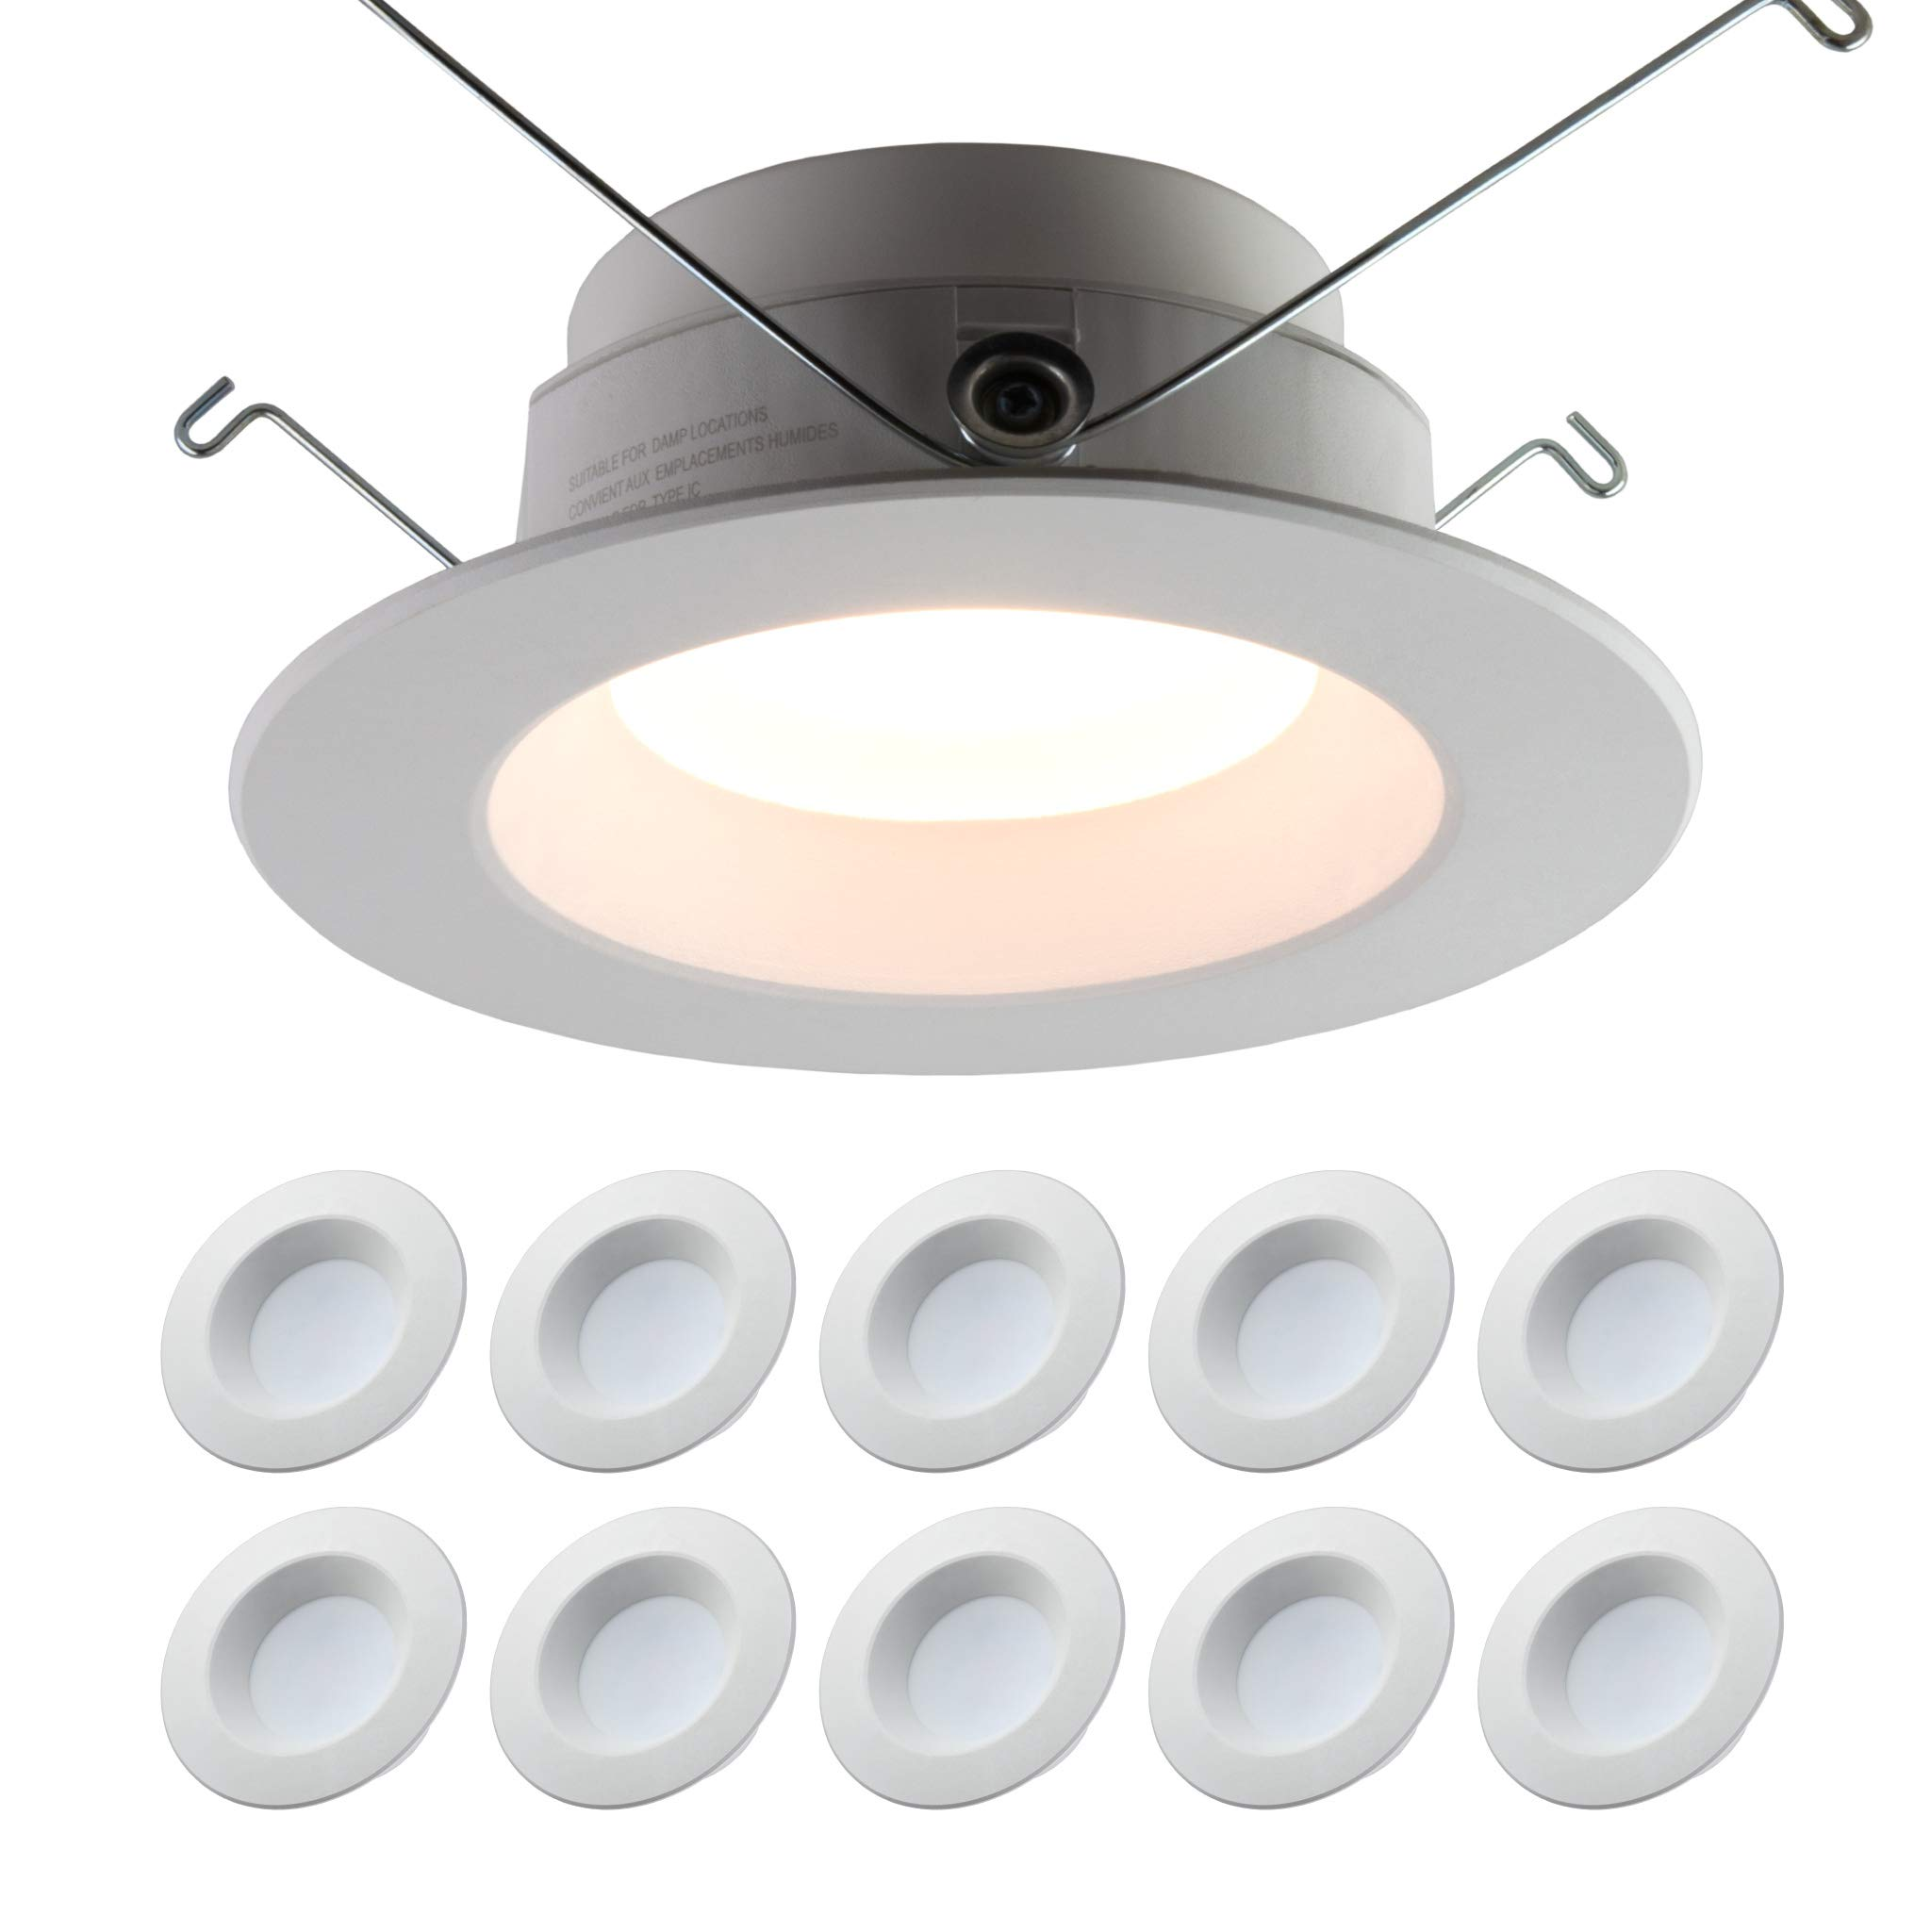 5/6'' inch Dimmable LED Downlight (10 PACK) 15W= 120W Replacement; 1100 Lumens; 120V; CRI>90; JA-8 Compliant, Energy Star, UL Listed; Easy Install Into Exisiting 5/6'' Recessed Can (Warm-White 3000K)